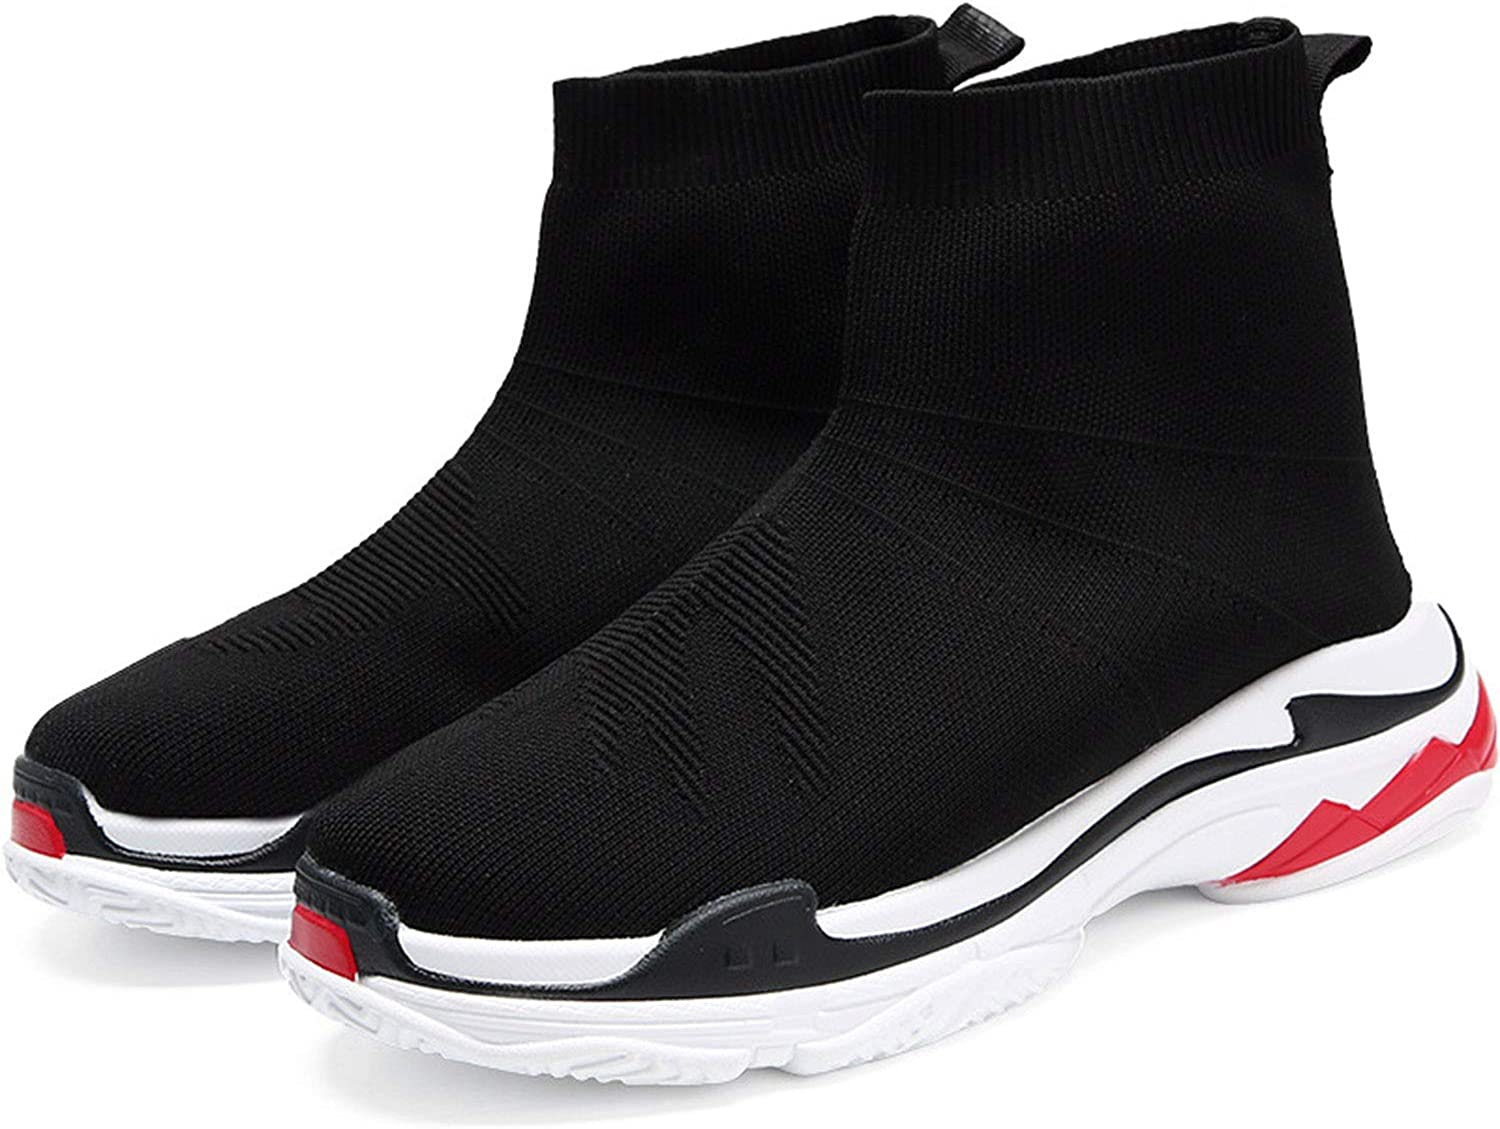 Spring and Summer Sports shoes Non-Slip shoes Men's shoes Deodorant Women's shoes Socks Sports shoes @ Y.T,Black,7